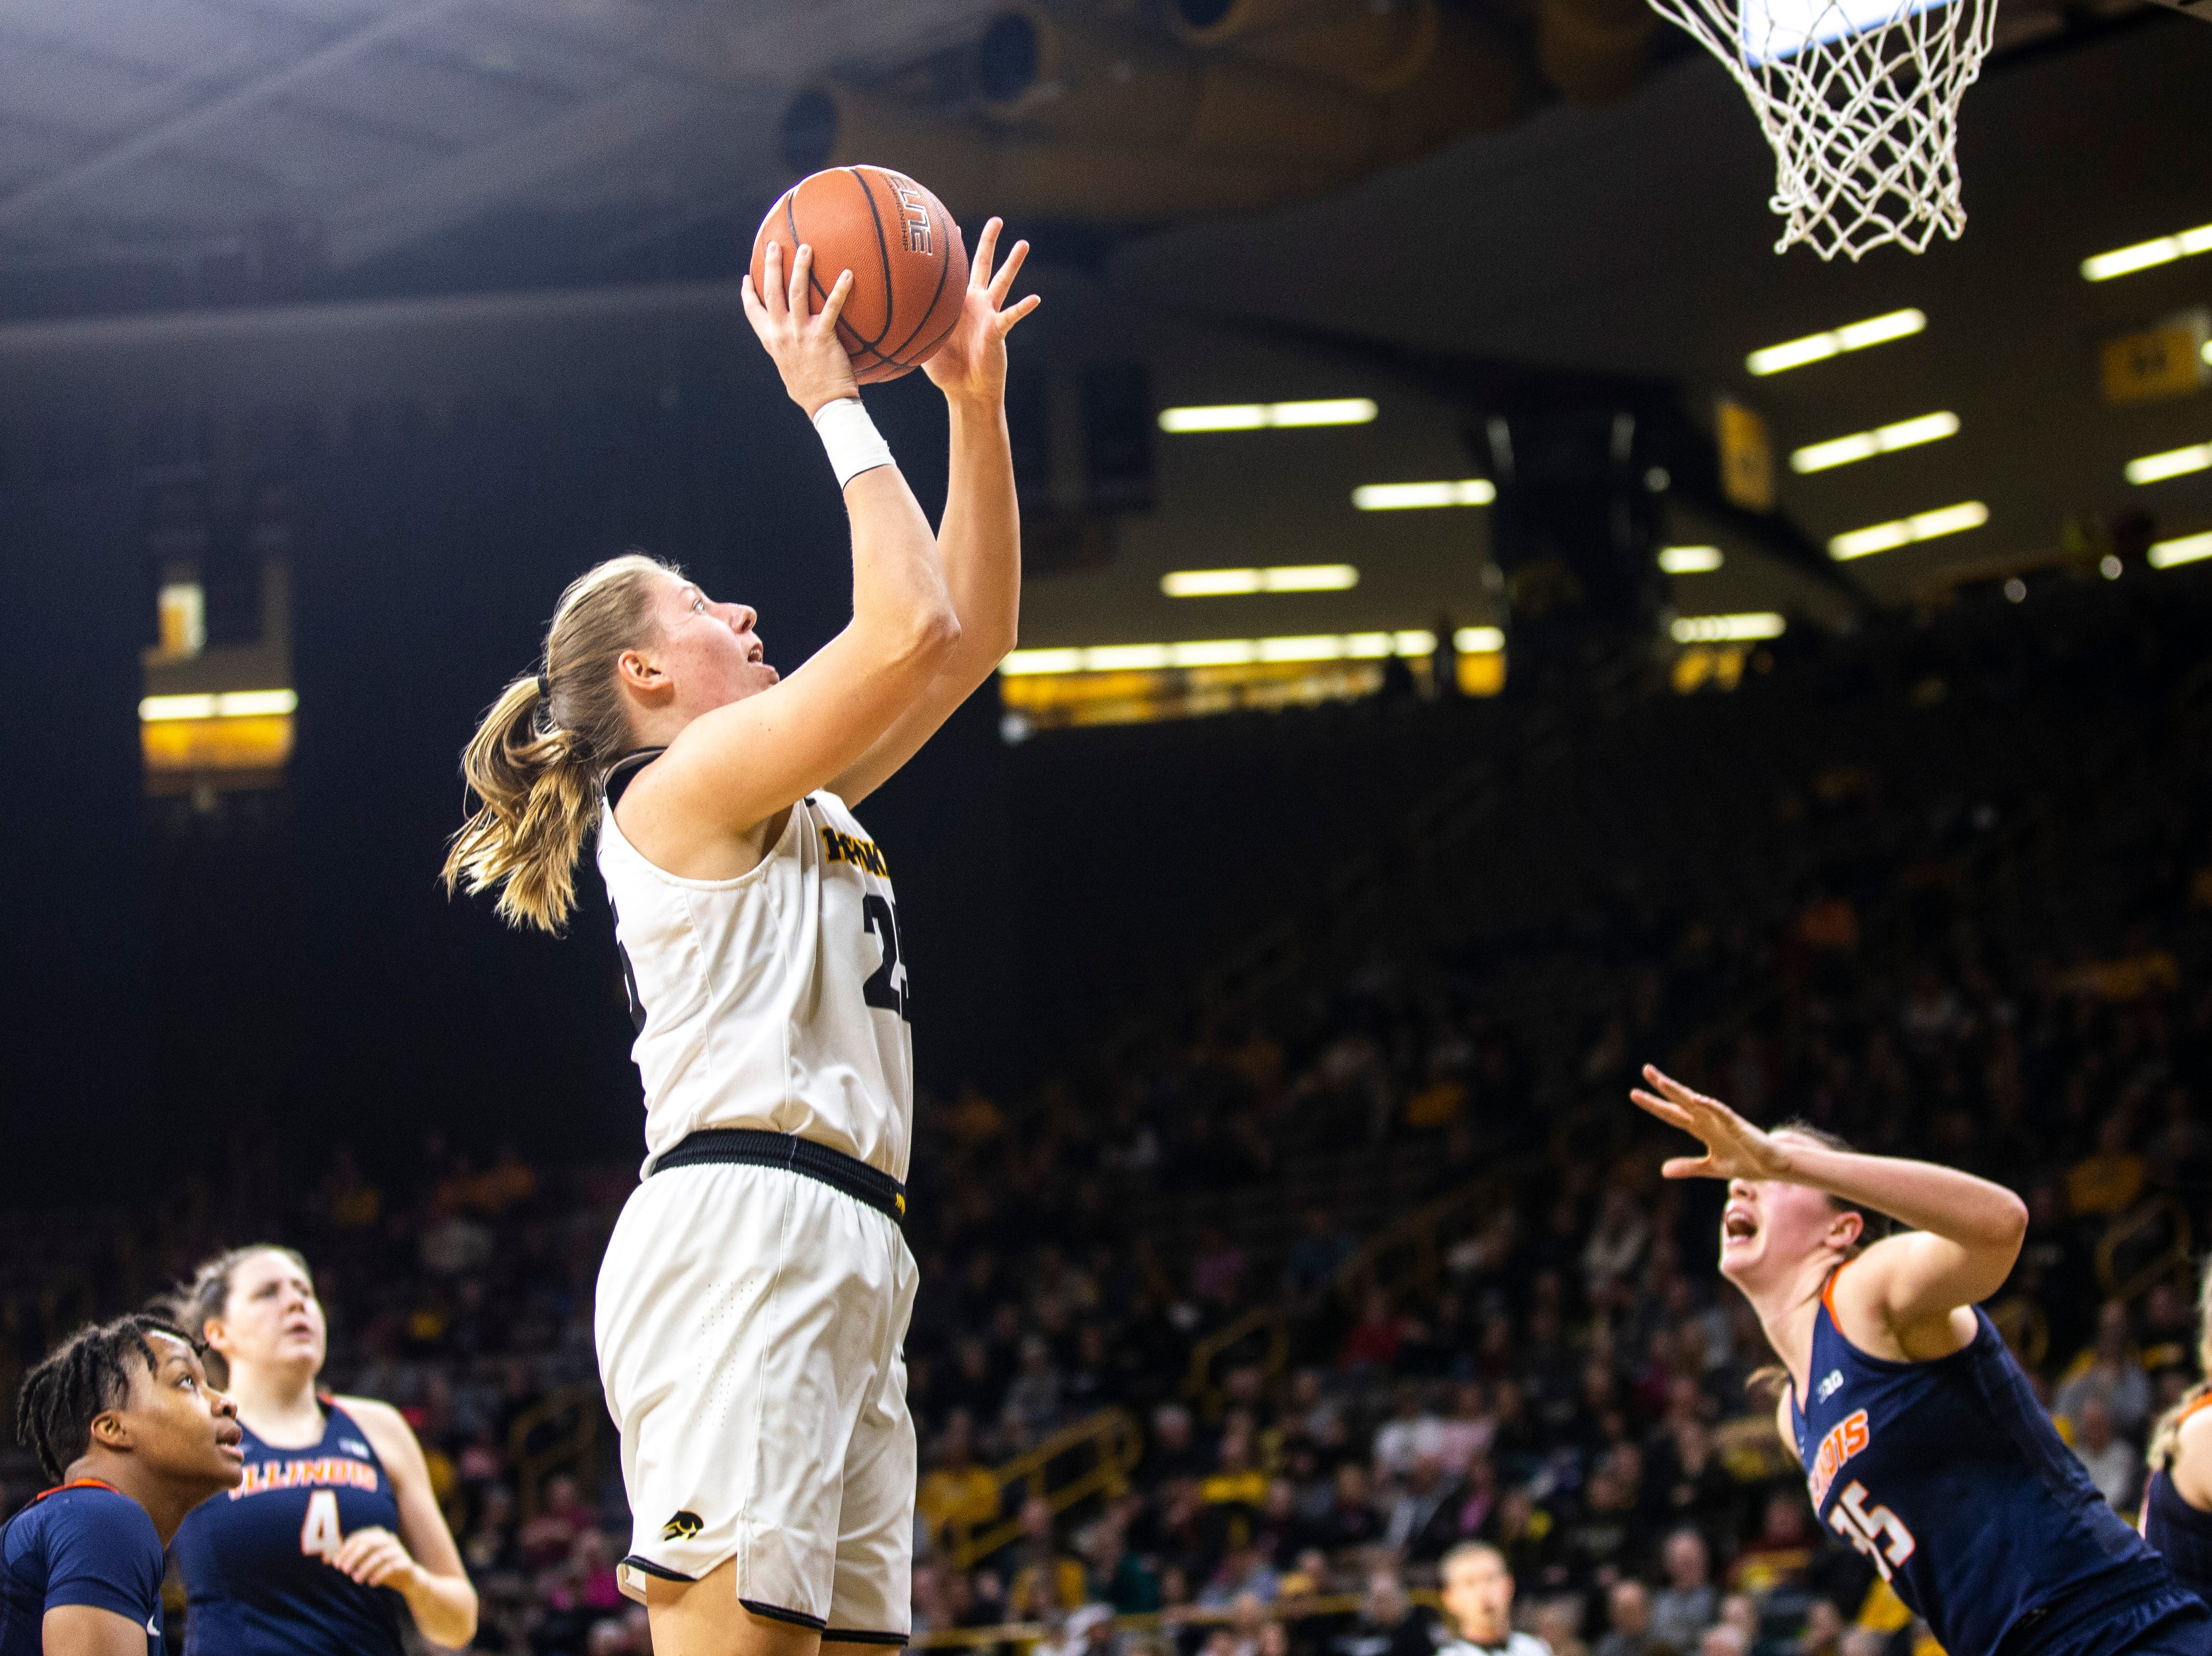 Iowa's Monika Czinano (25) attempts a basket during a NCAA Big Ten Conference women's basketball game on Thursday, Feb. 14, 2019 at Carver-Hawkeye Arena in Iowa City, Iowa.